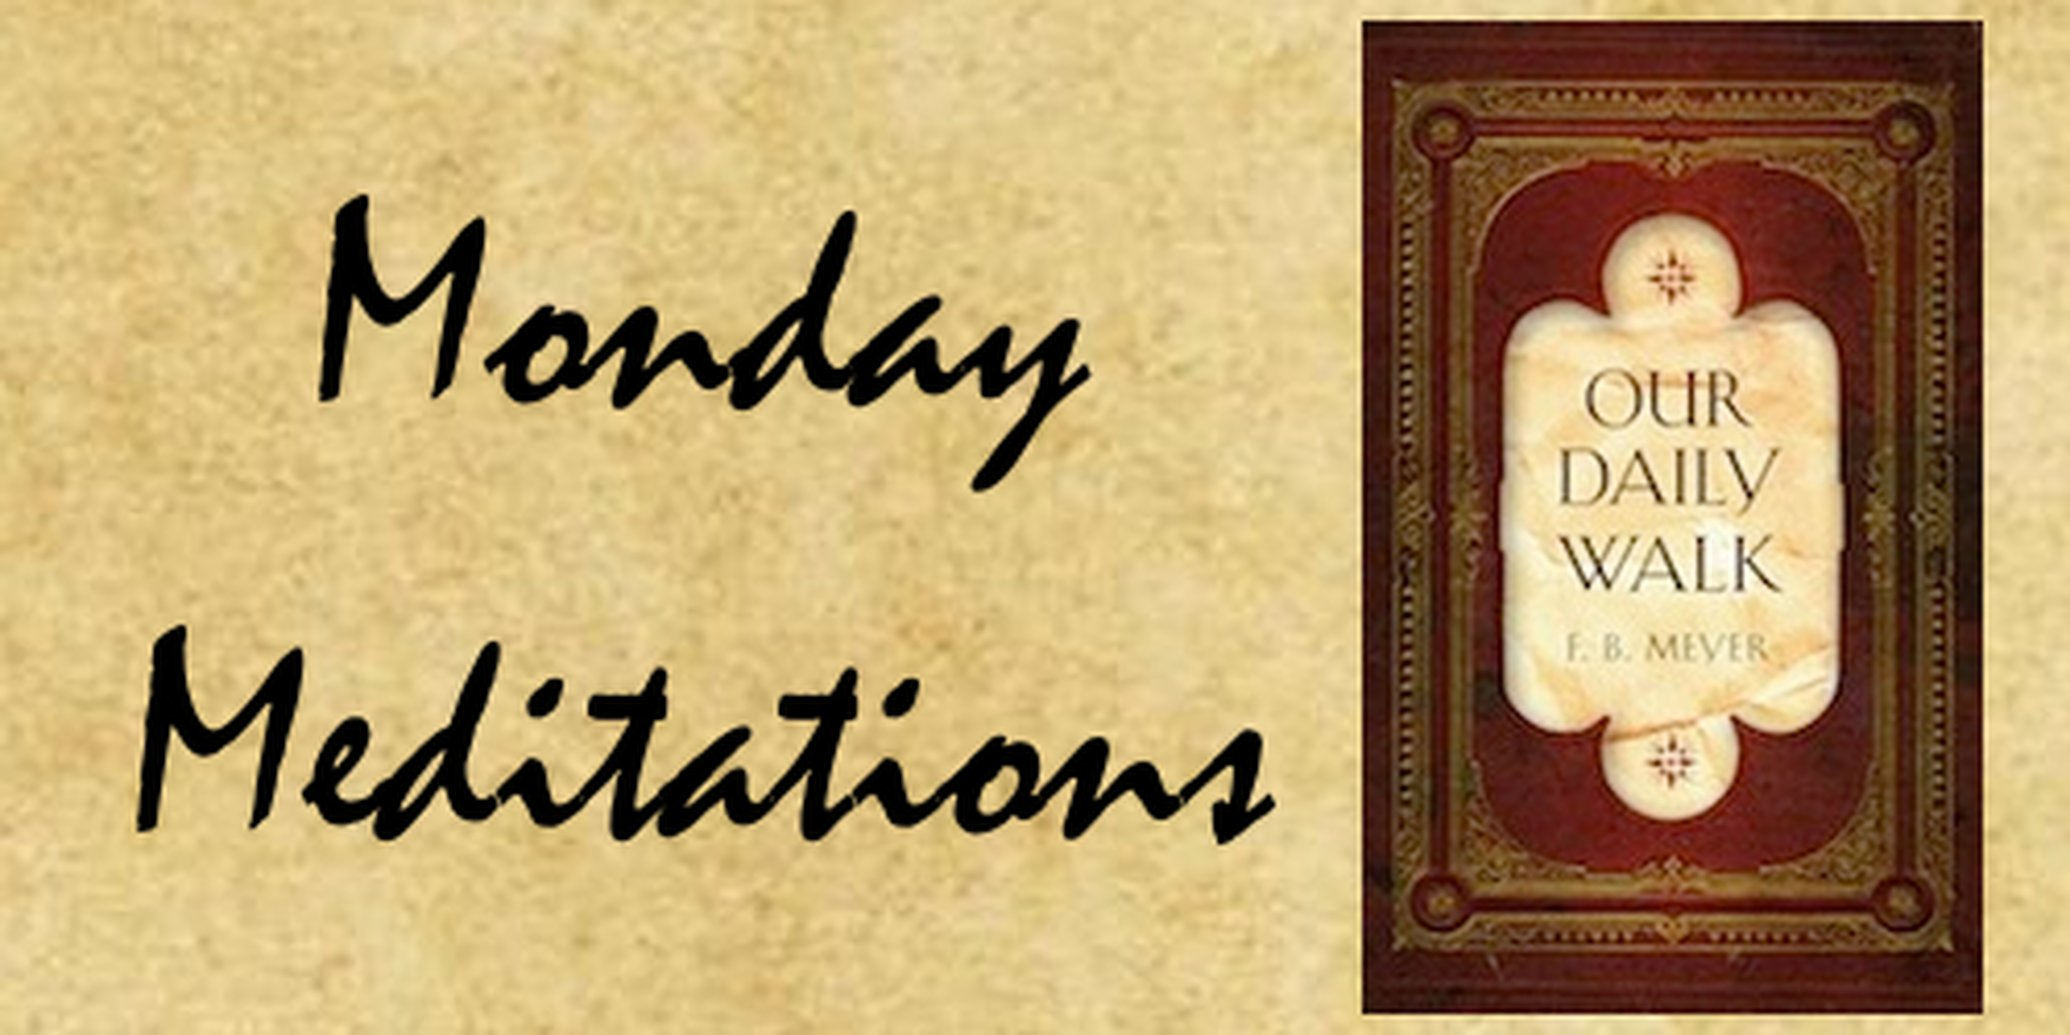 Monday Meditations - Love's Compulsion - F. B. Meyer